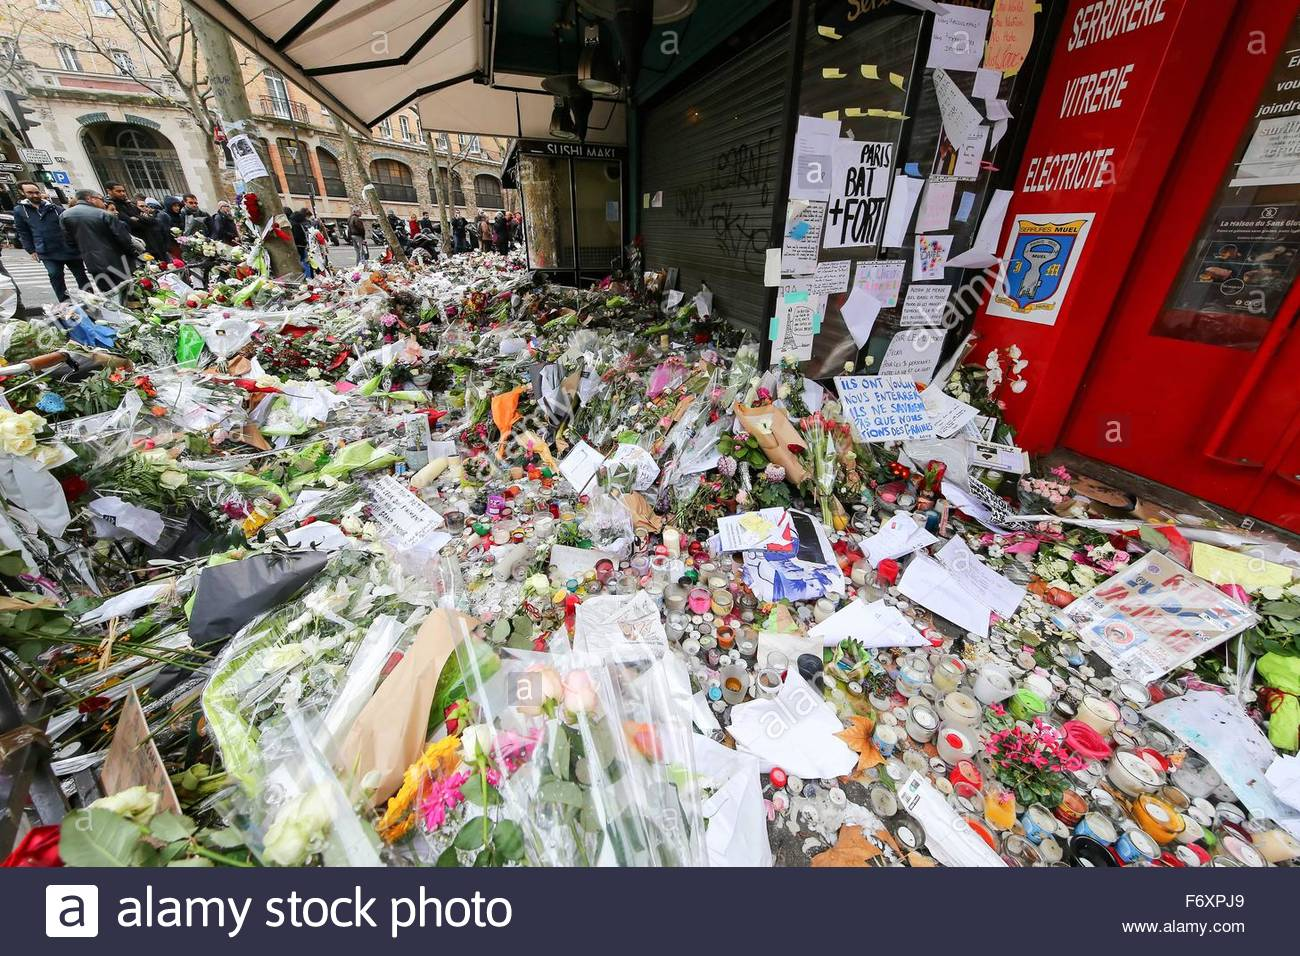 Paris, France. novembre 21st, 2015. FRANCE, Paris: Flowers and candles are shown near La belle Equipe cafe on November Stock Photo